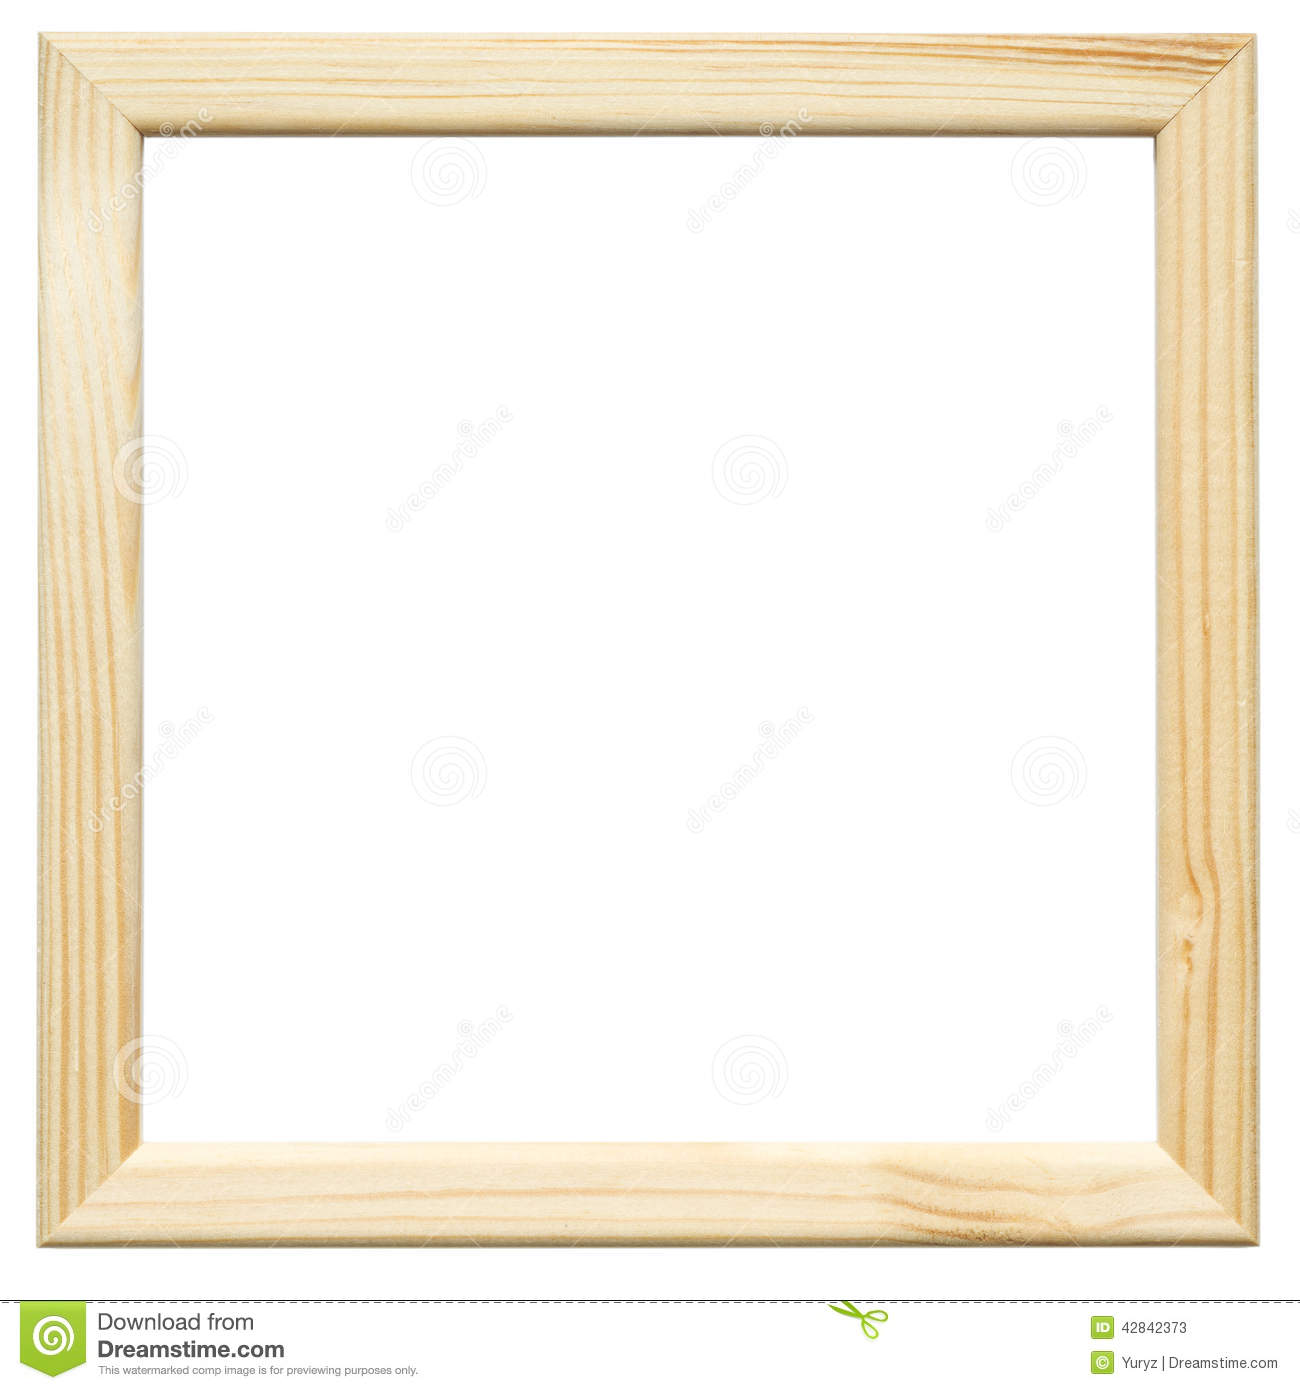 Wooden frame stock image. Image of sample, picture, simple ...